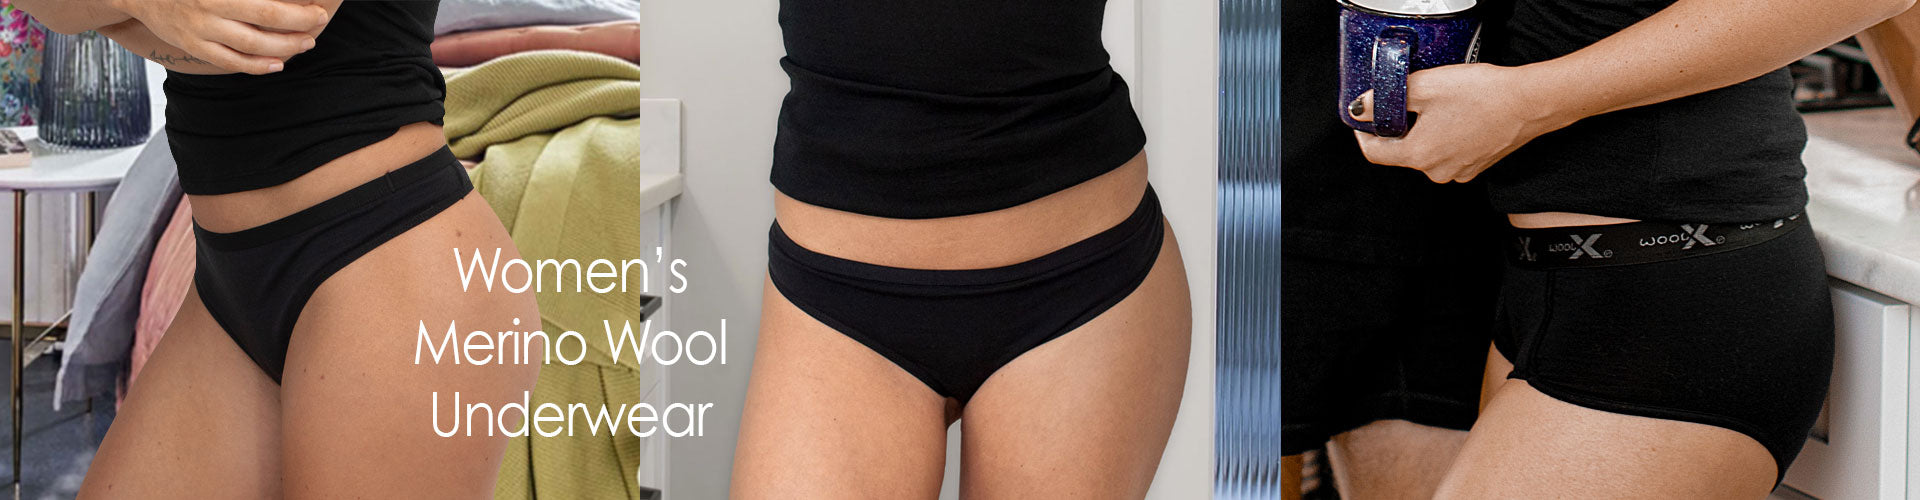 Womens Merino Wool Underwear